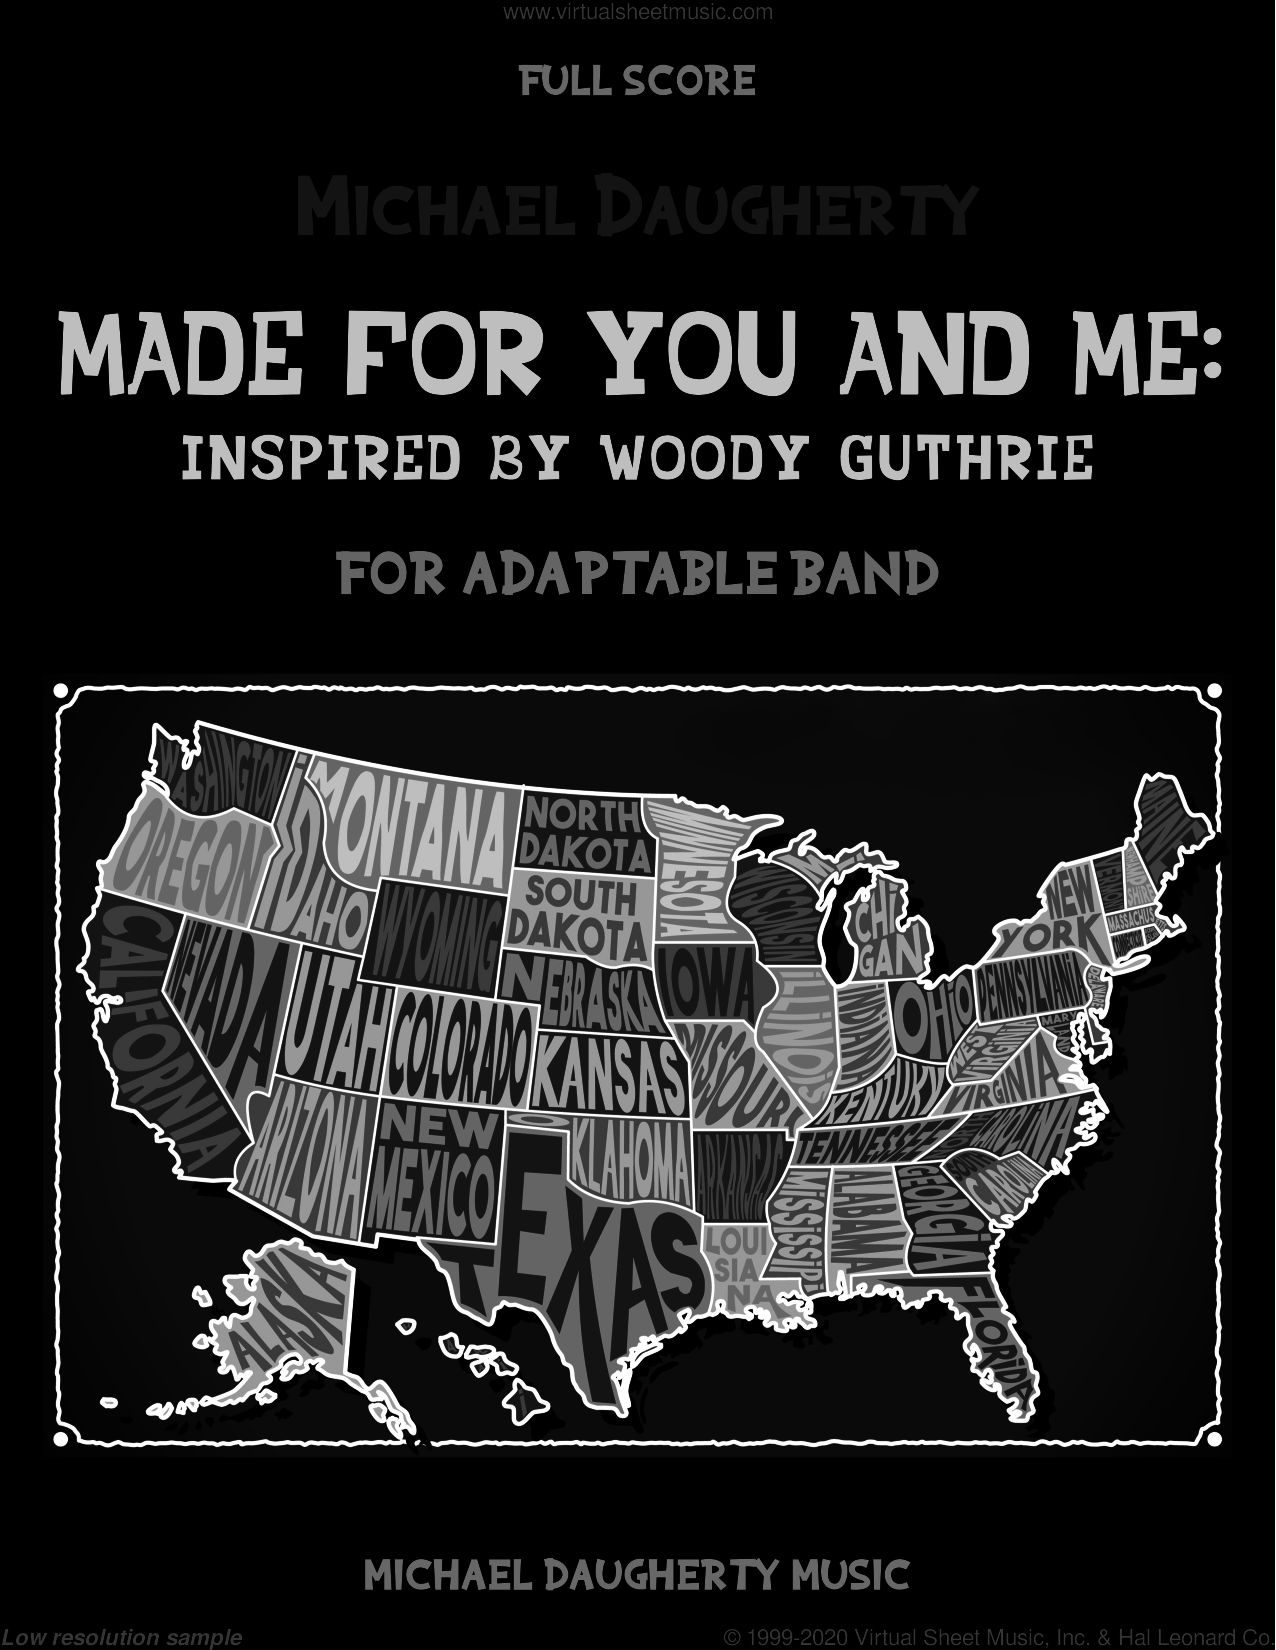 Made for You and Me: Inspired by Woody Guthrie (COMPLETE) sheet music for concert band by Michael Daugherty, intermediate skill level